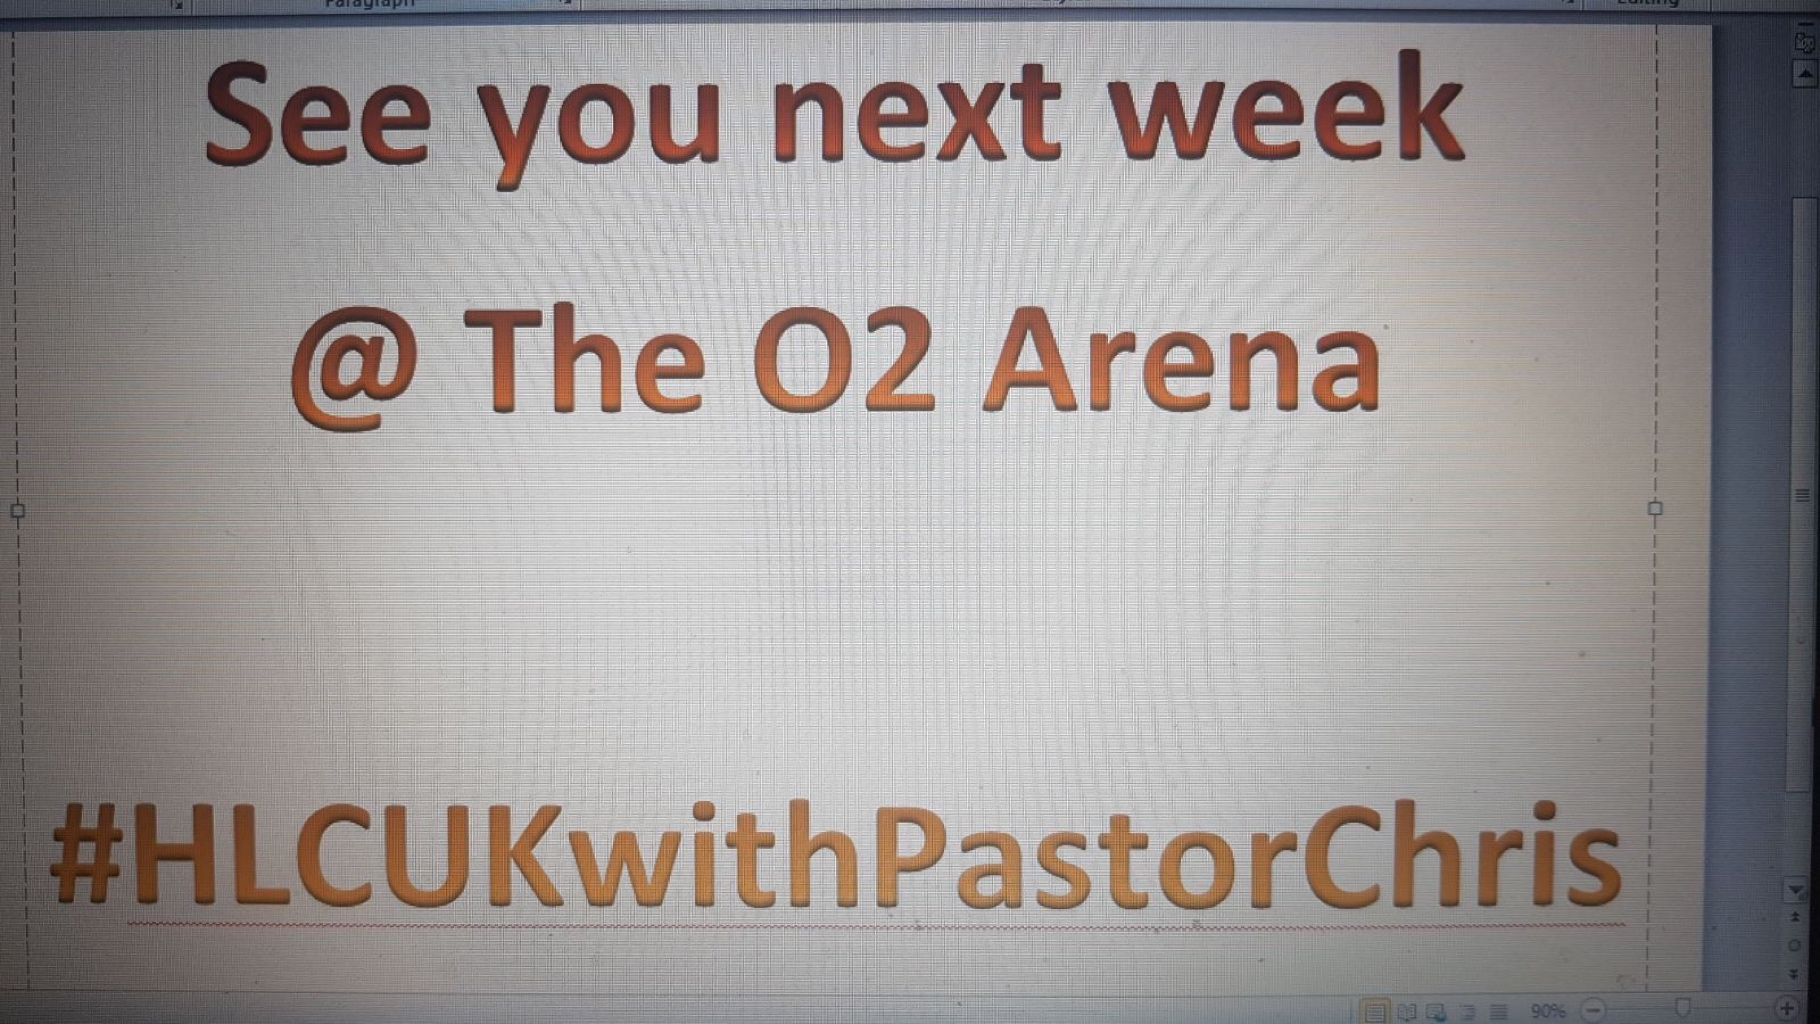 #HLCUKwithPastorChris